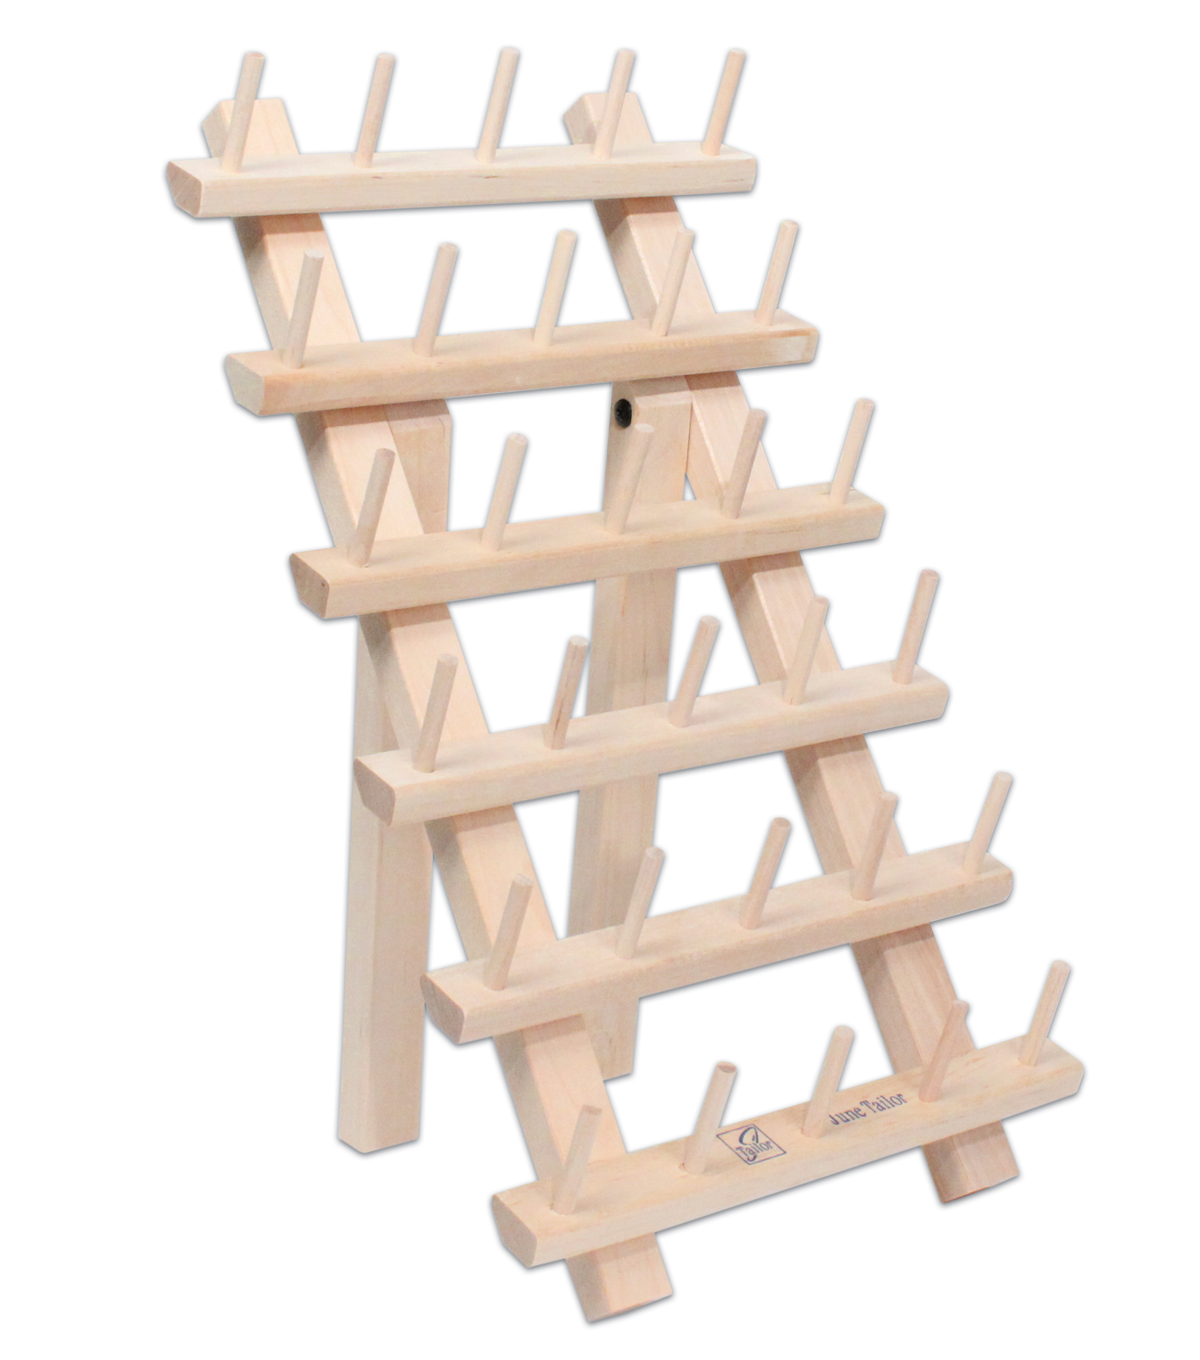 June Tailor 30 Spool Thread Wood Rack with Legs